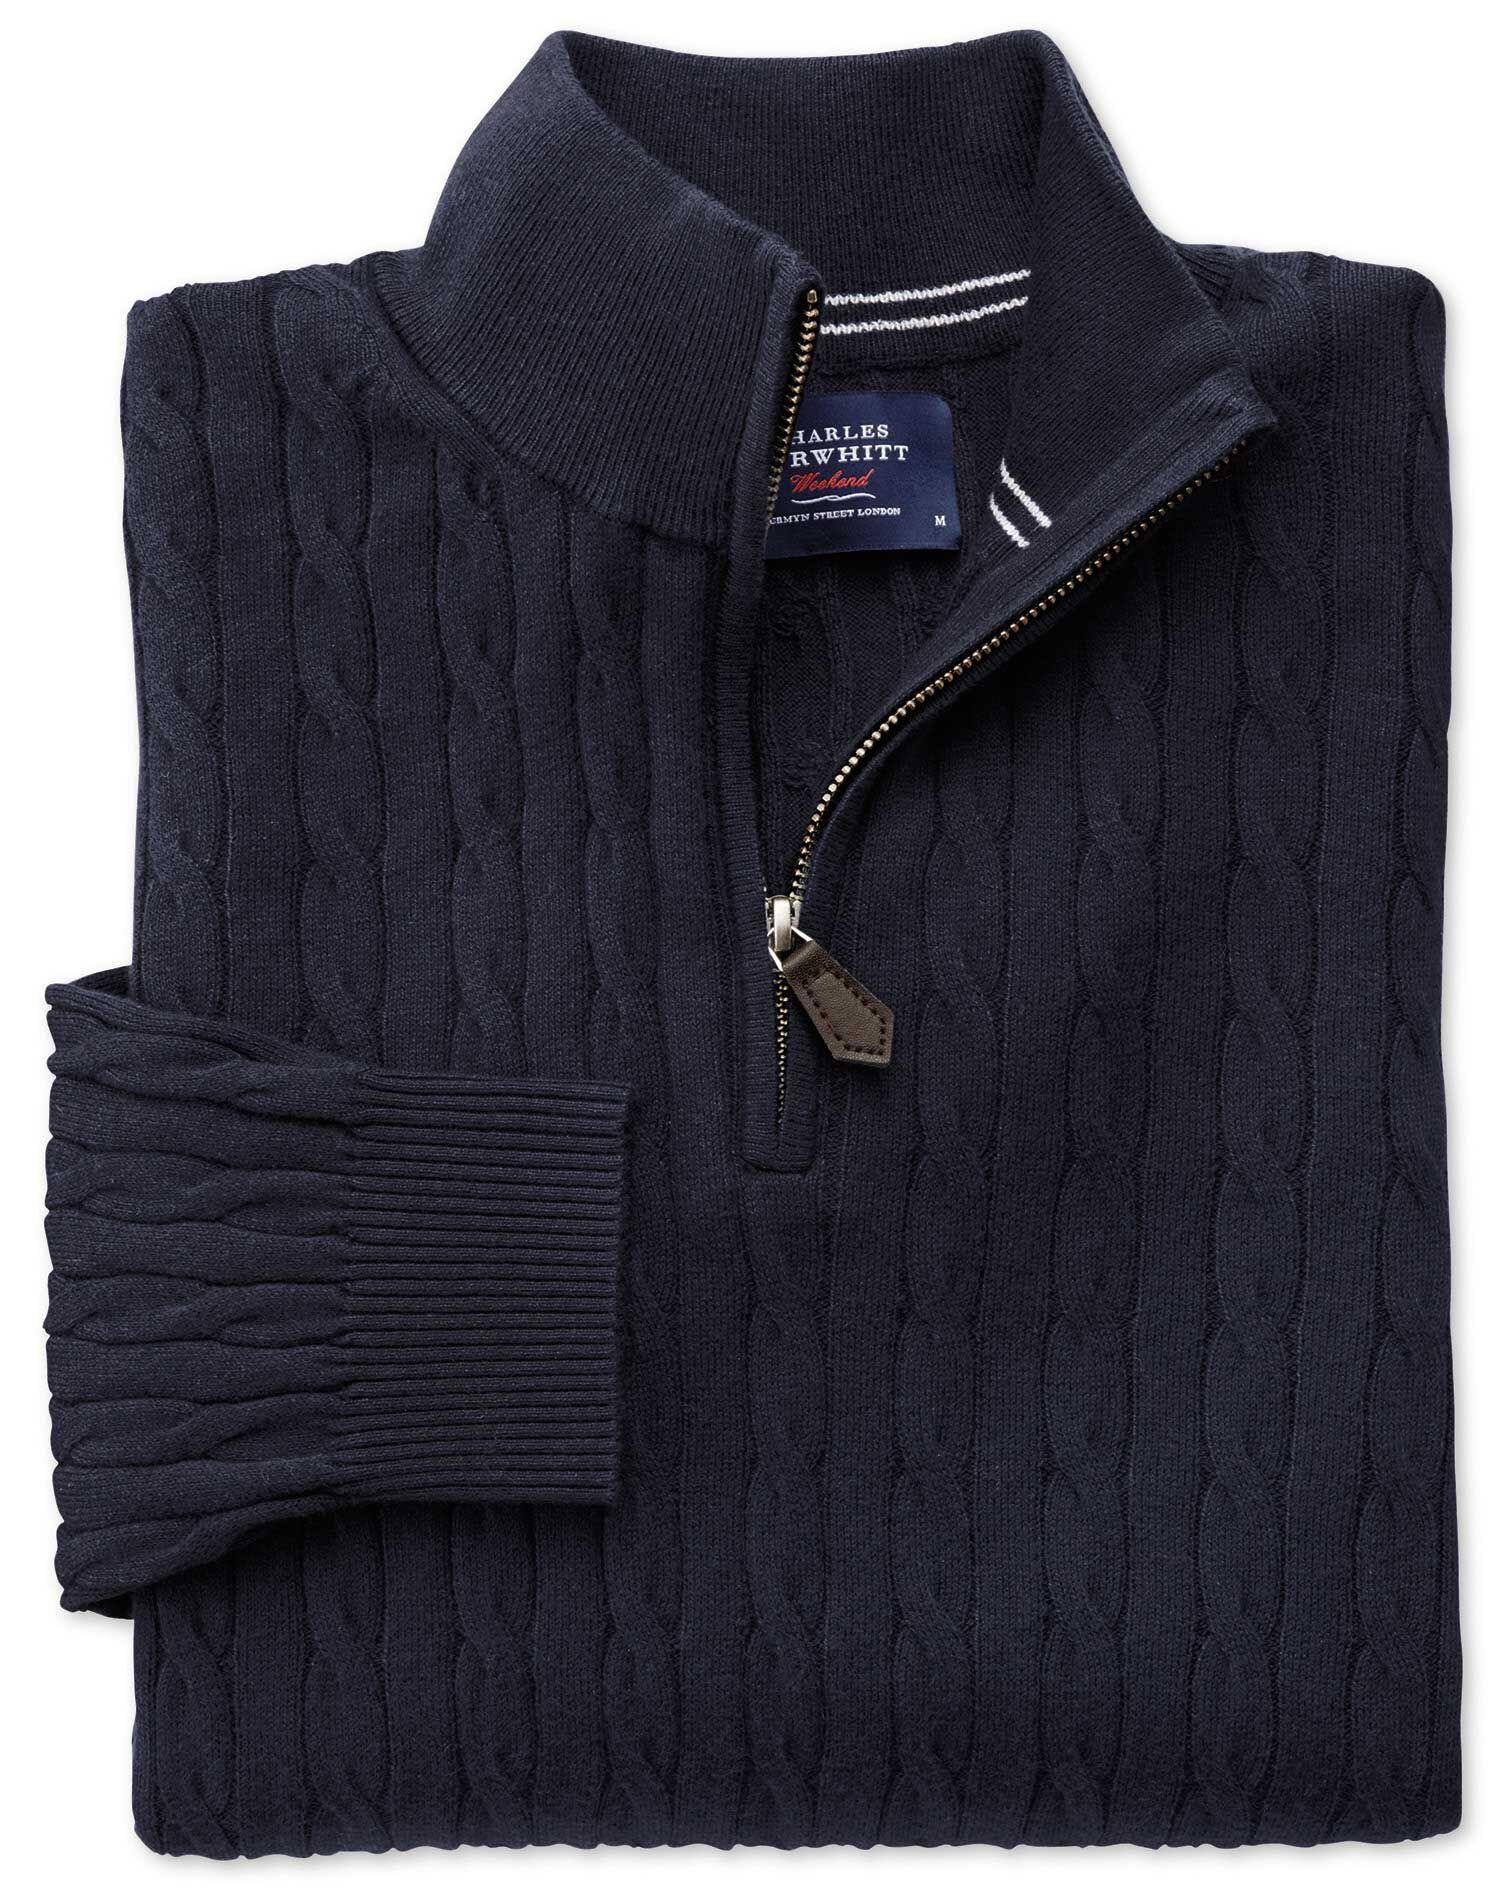 Navy Cotton Cashmere Cable Zip Neck Jumper Size XXXL by Charles Tyrwhitt